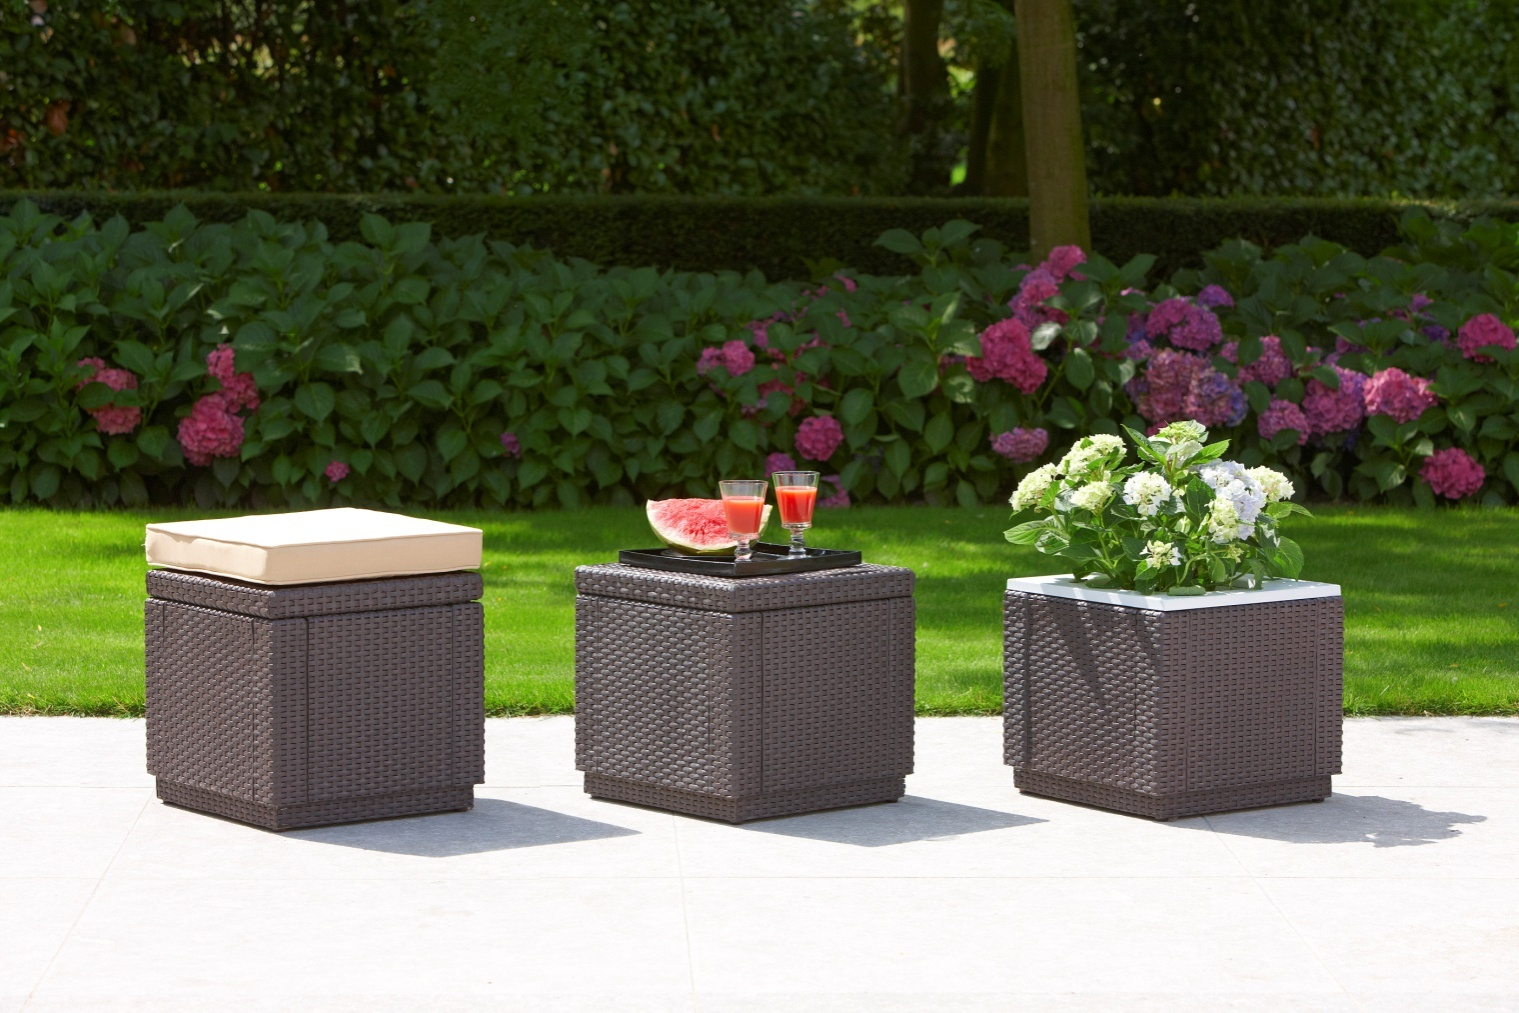 The Cube Set (Seating - Storage - Planter)